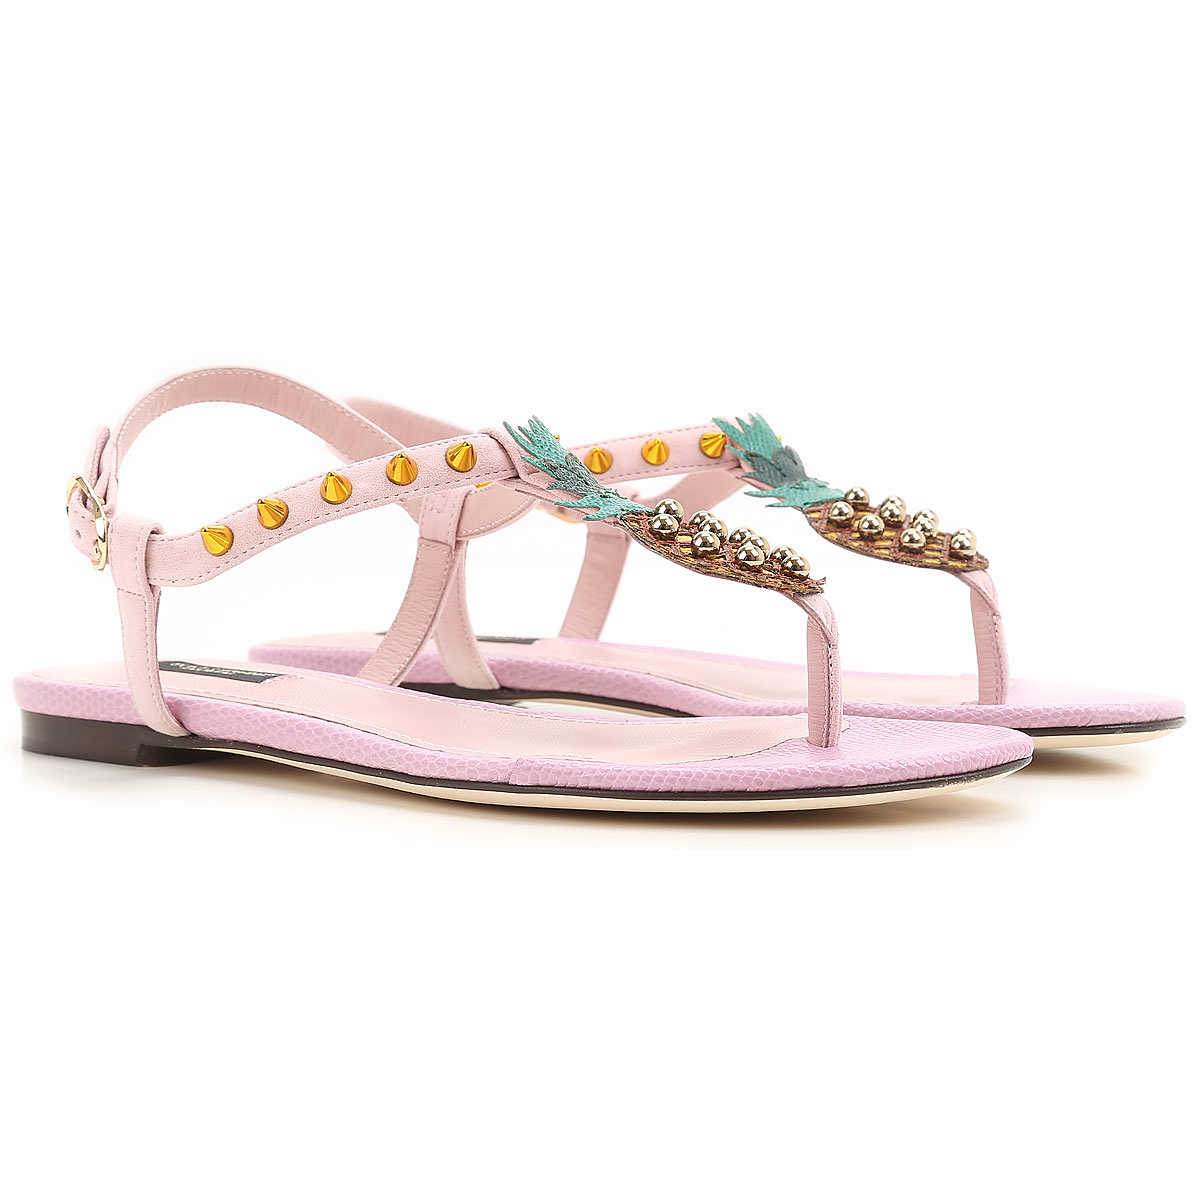 Dolce & Gabbana Sandals for Women On Sale in Outlet Pink DK - GOOFASH - Womens SANDALS